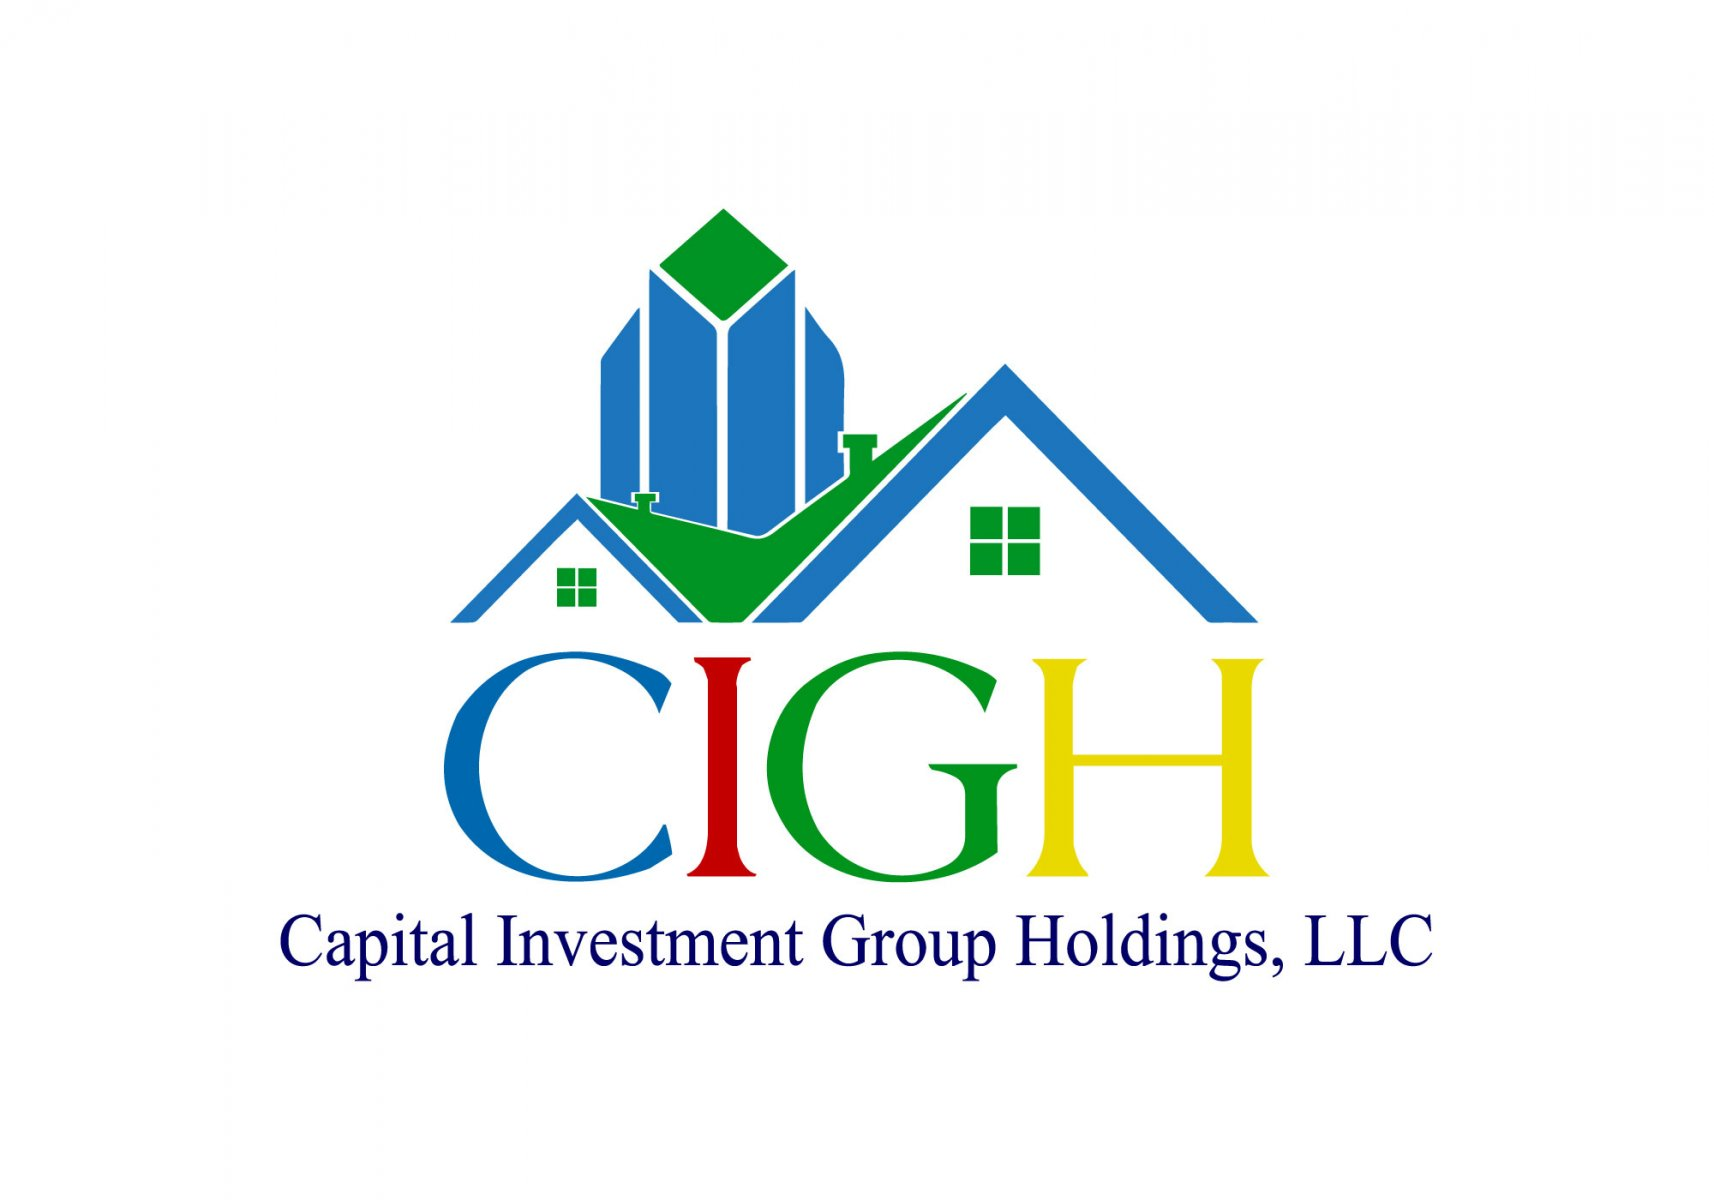 Capital Investment Group Holdings, LLC logo